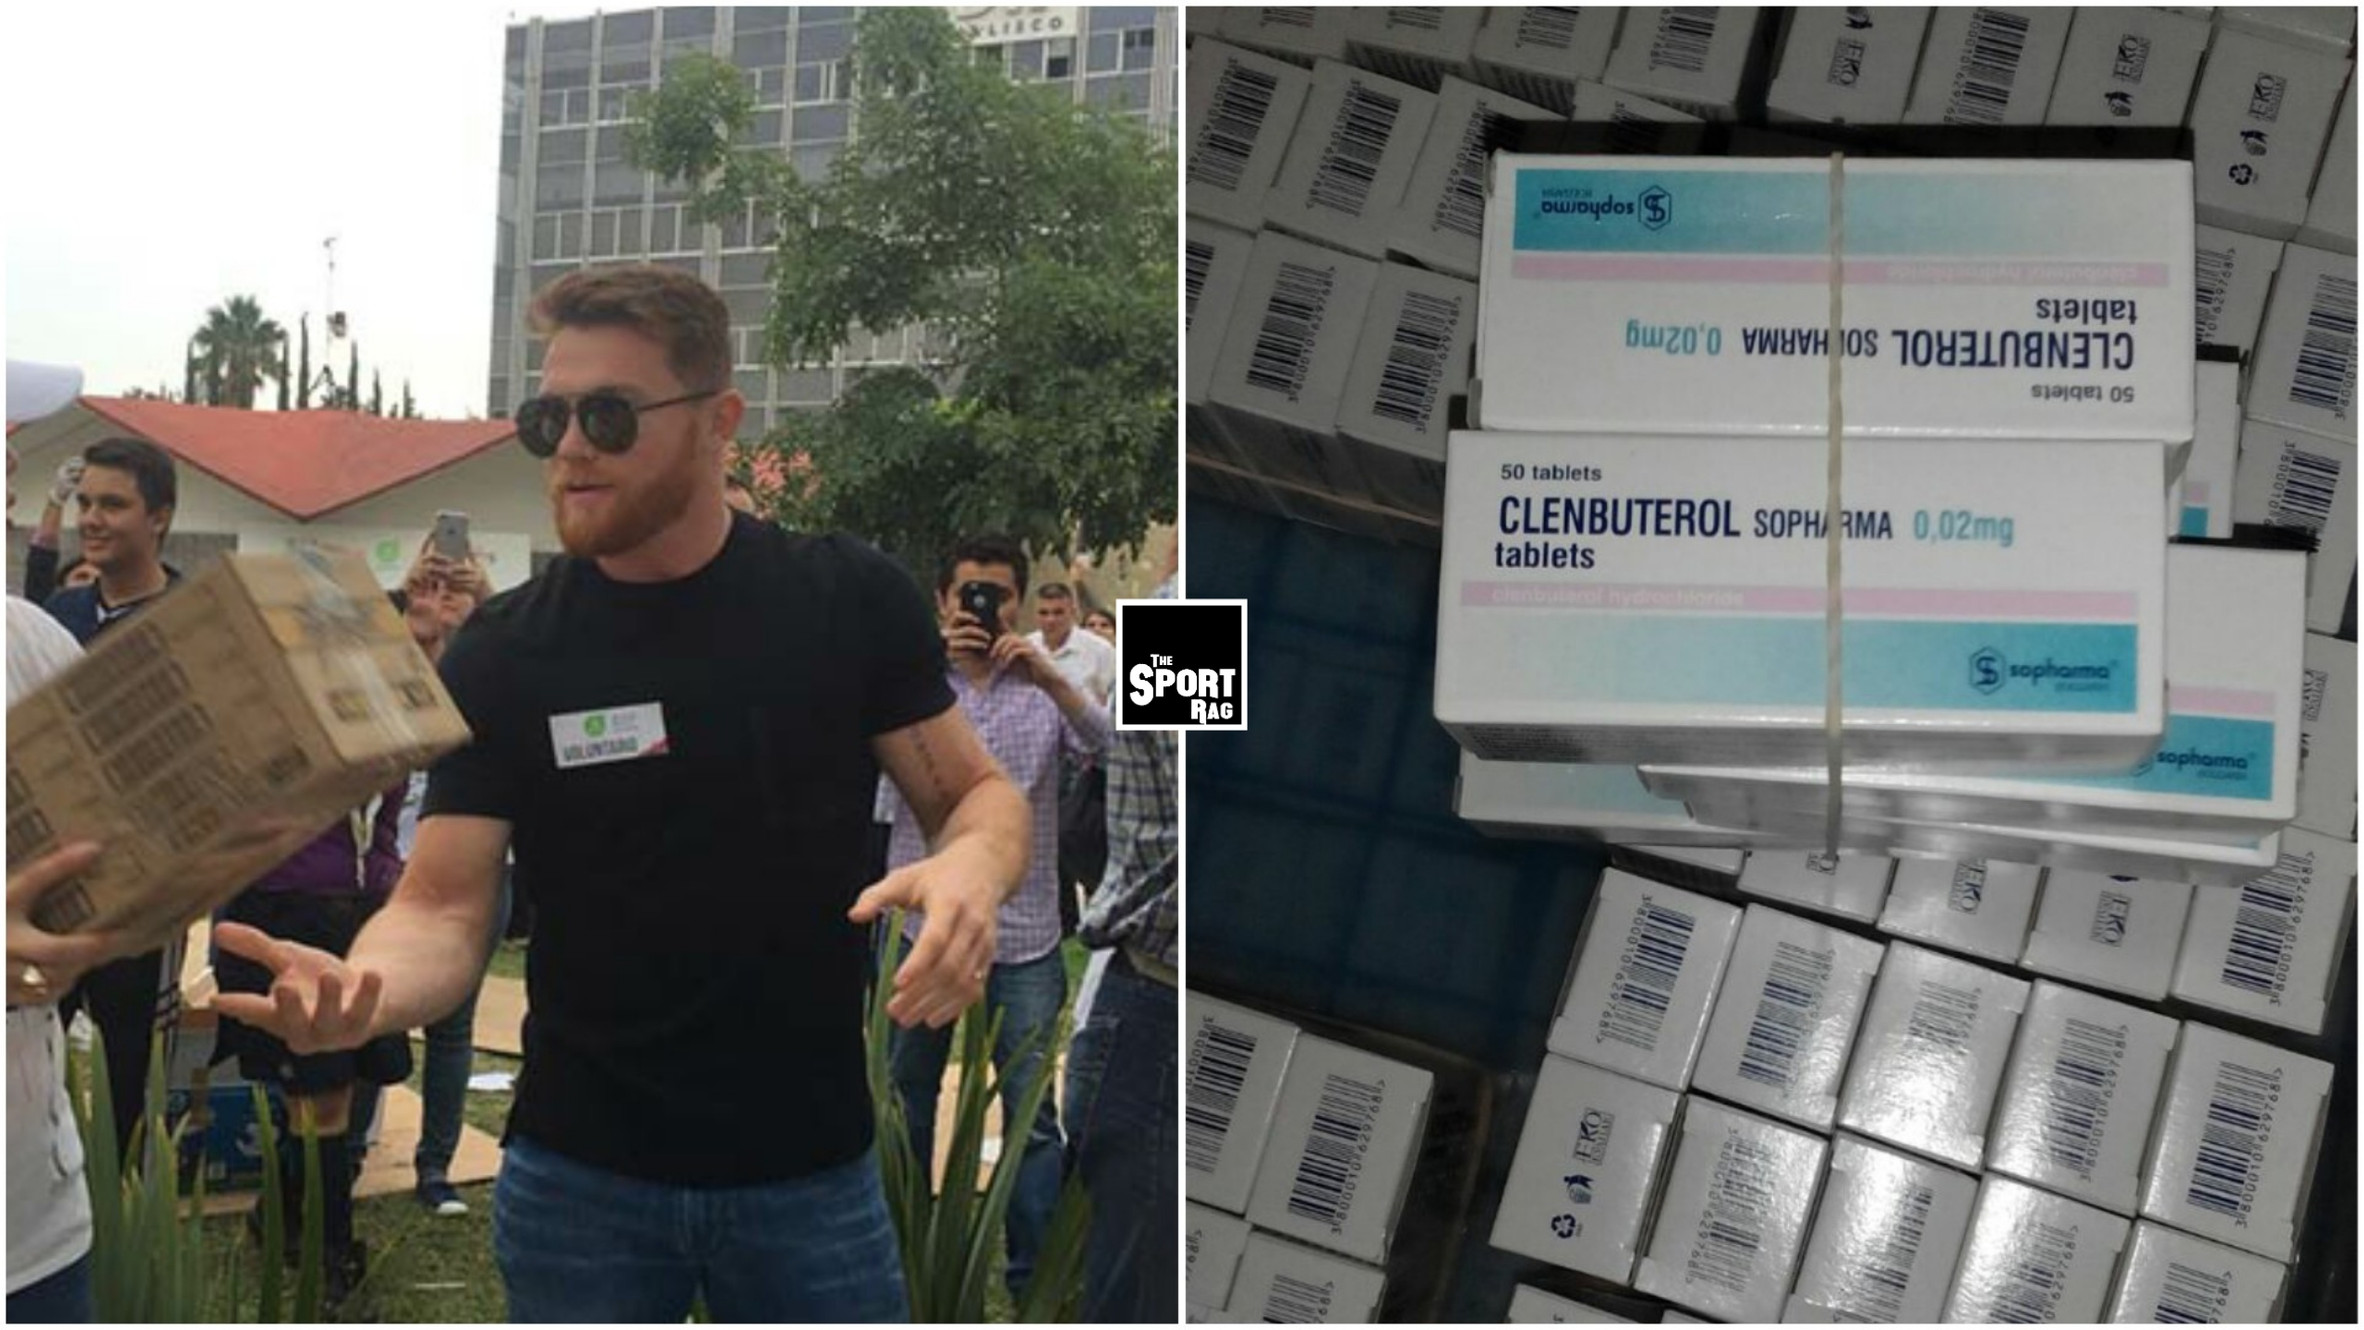 COVID-19: Canelo donates $1million of clenbuterol from personal stash